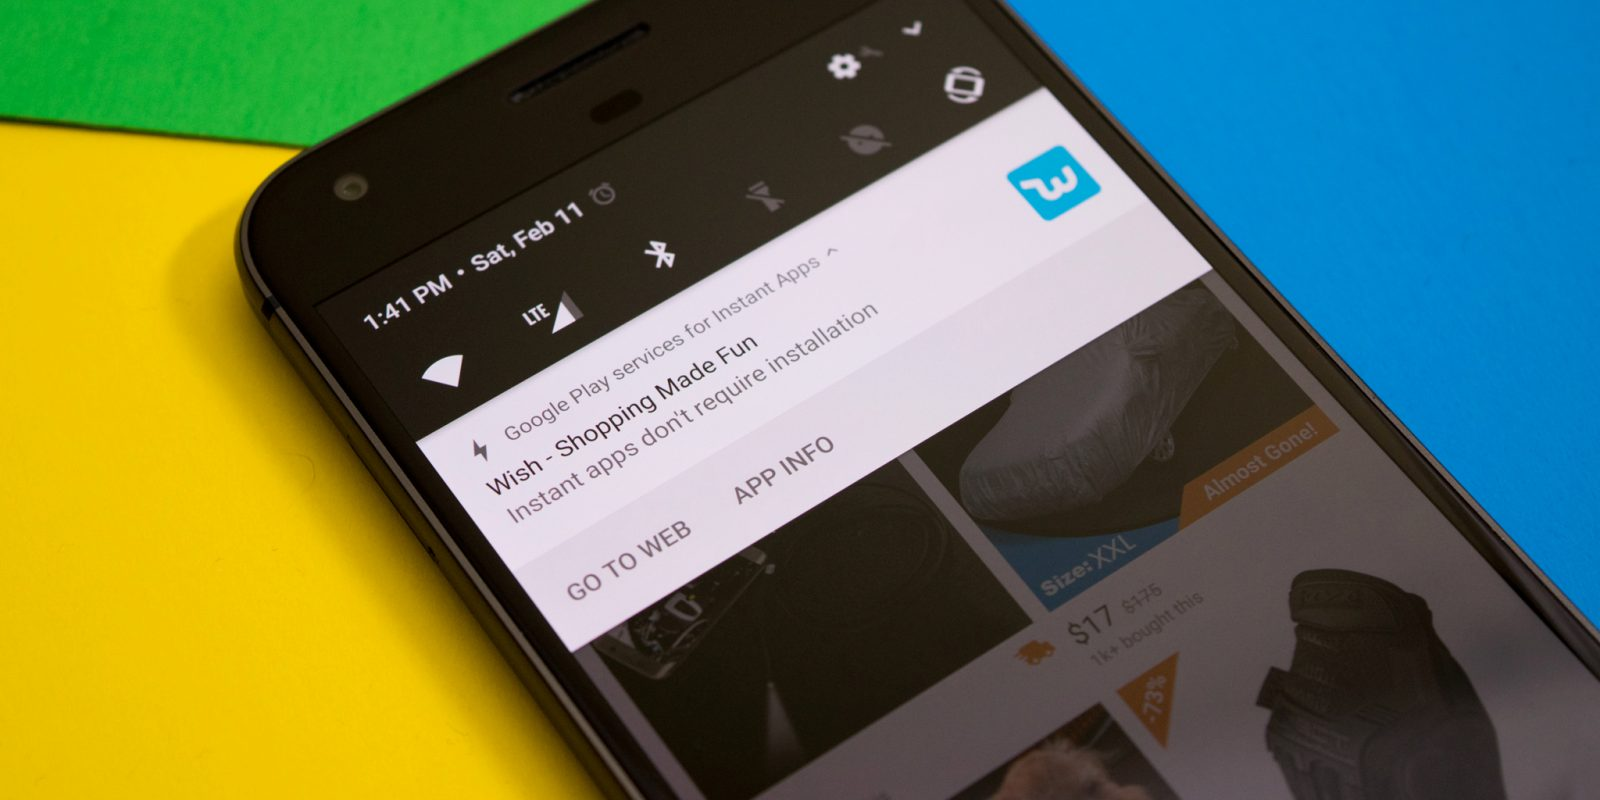 Google Play Protect is the new public-facing security package for Android